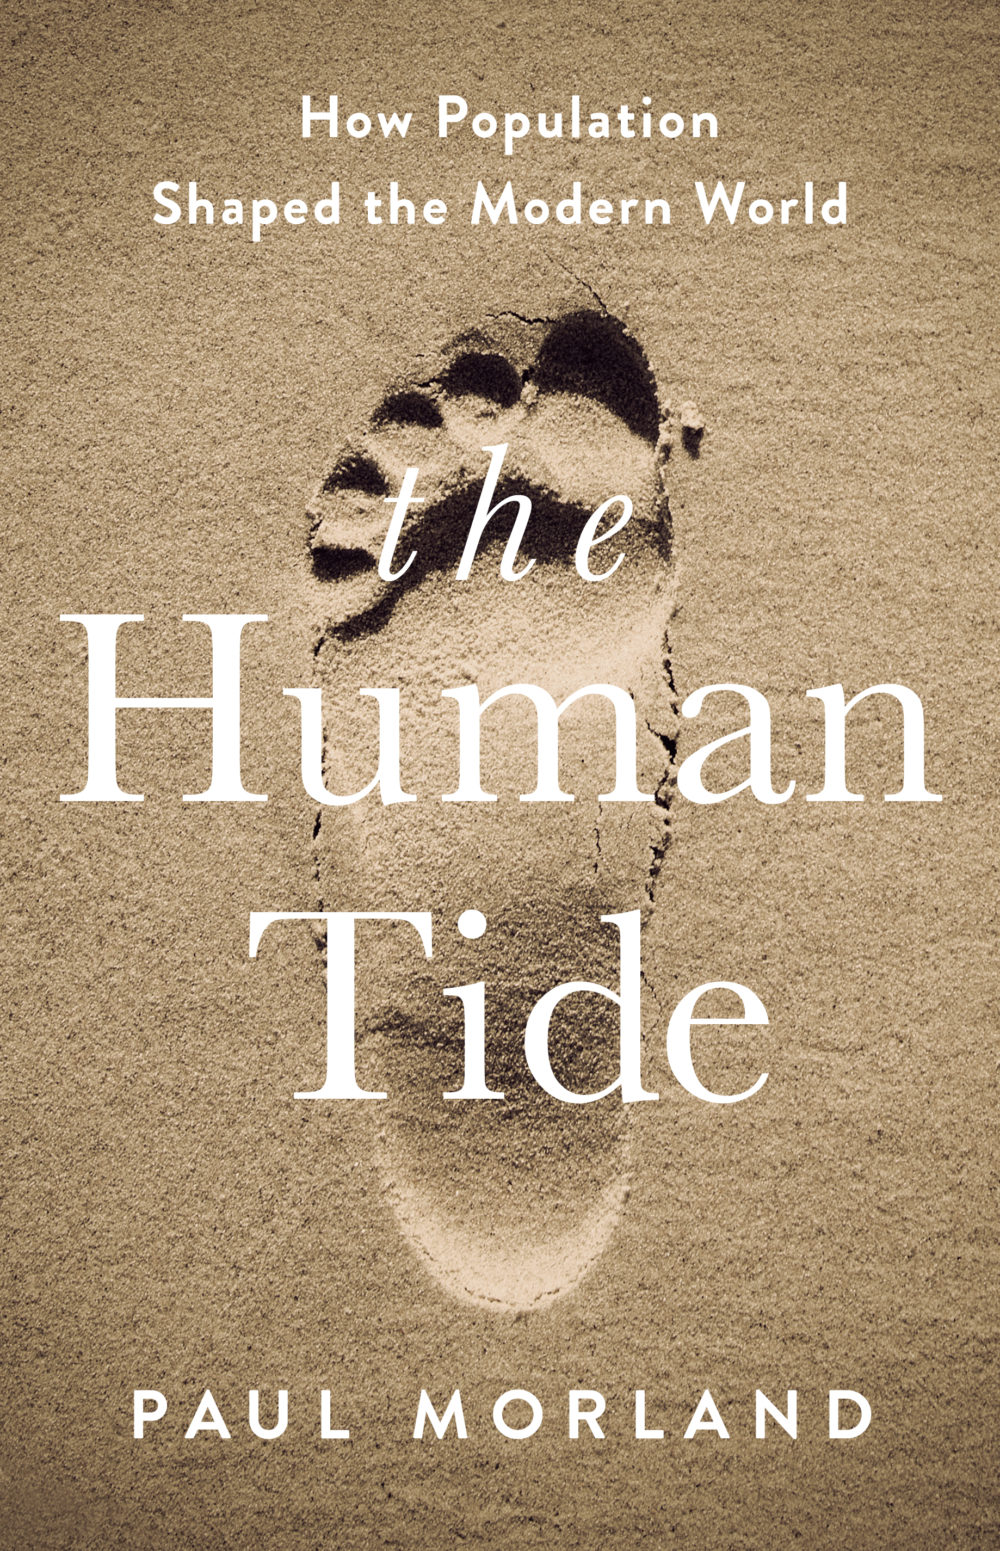 """The Human Tide"" by Paul Morland. (Courtesy of Hachette Book Group)"